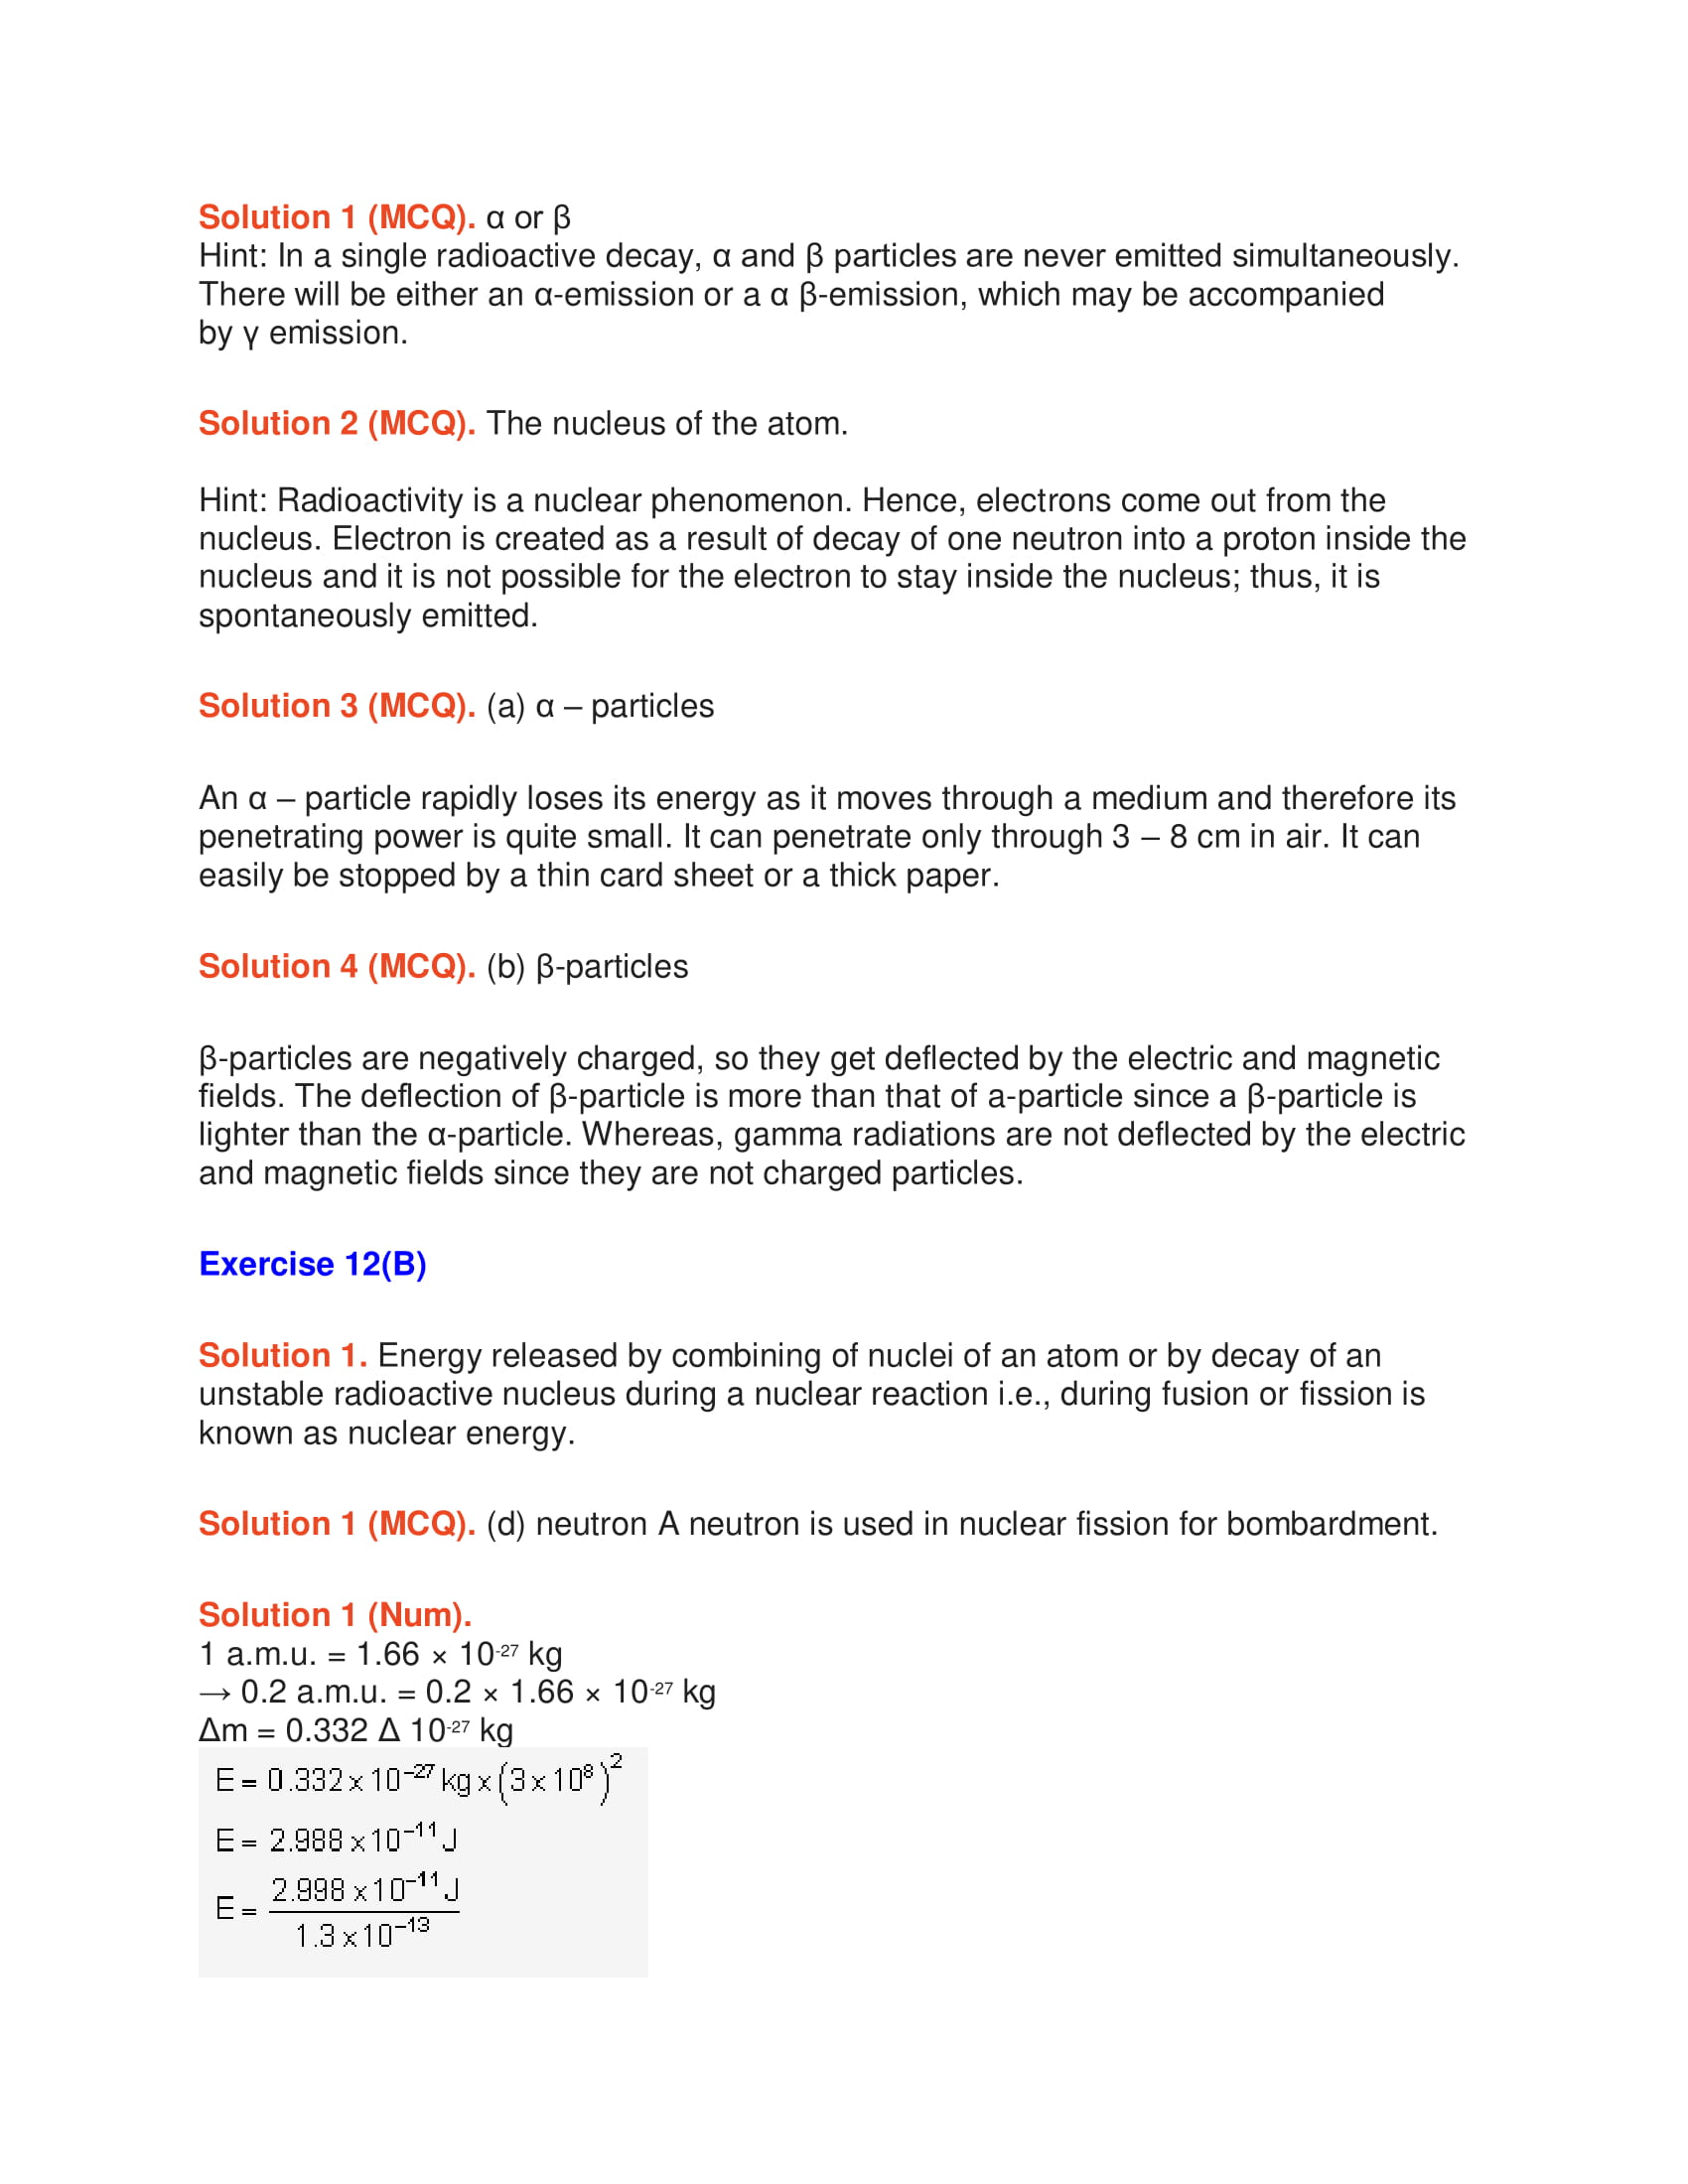 Icse Solutions Class 10 Physics Chapter 12 Radioactivity